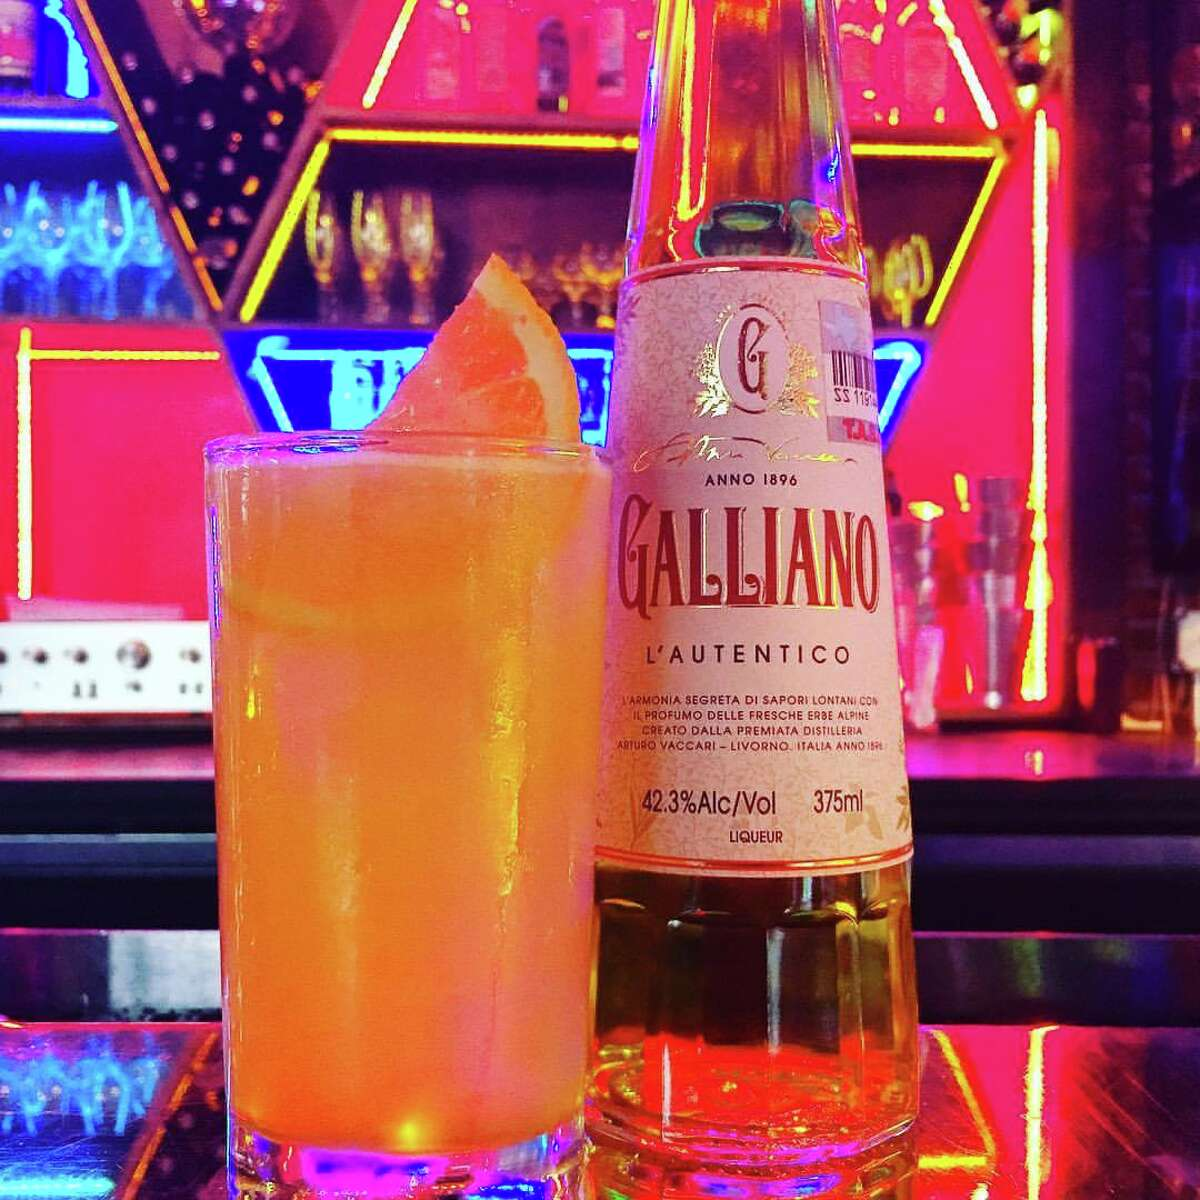 Better Luck Tomorrow will be serving Harvey Wallbanger cocktails during Hurricane Harvey if the bar is open, weather permitting.